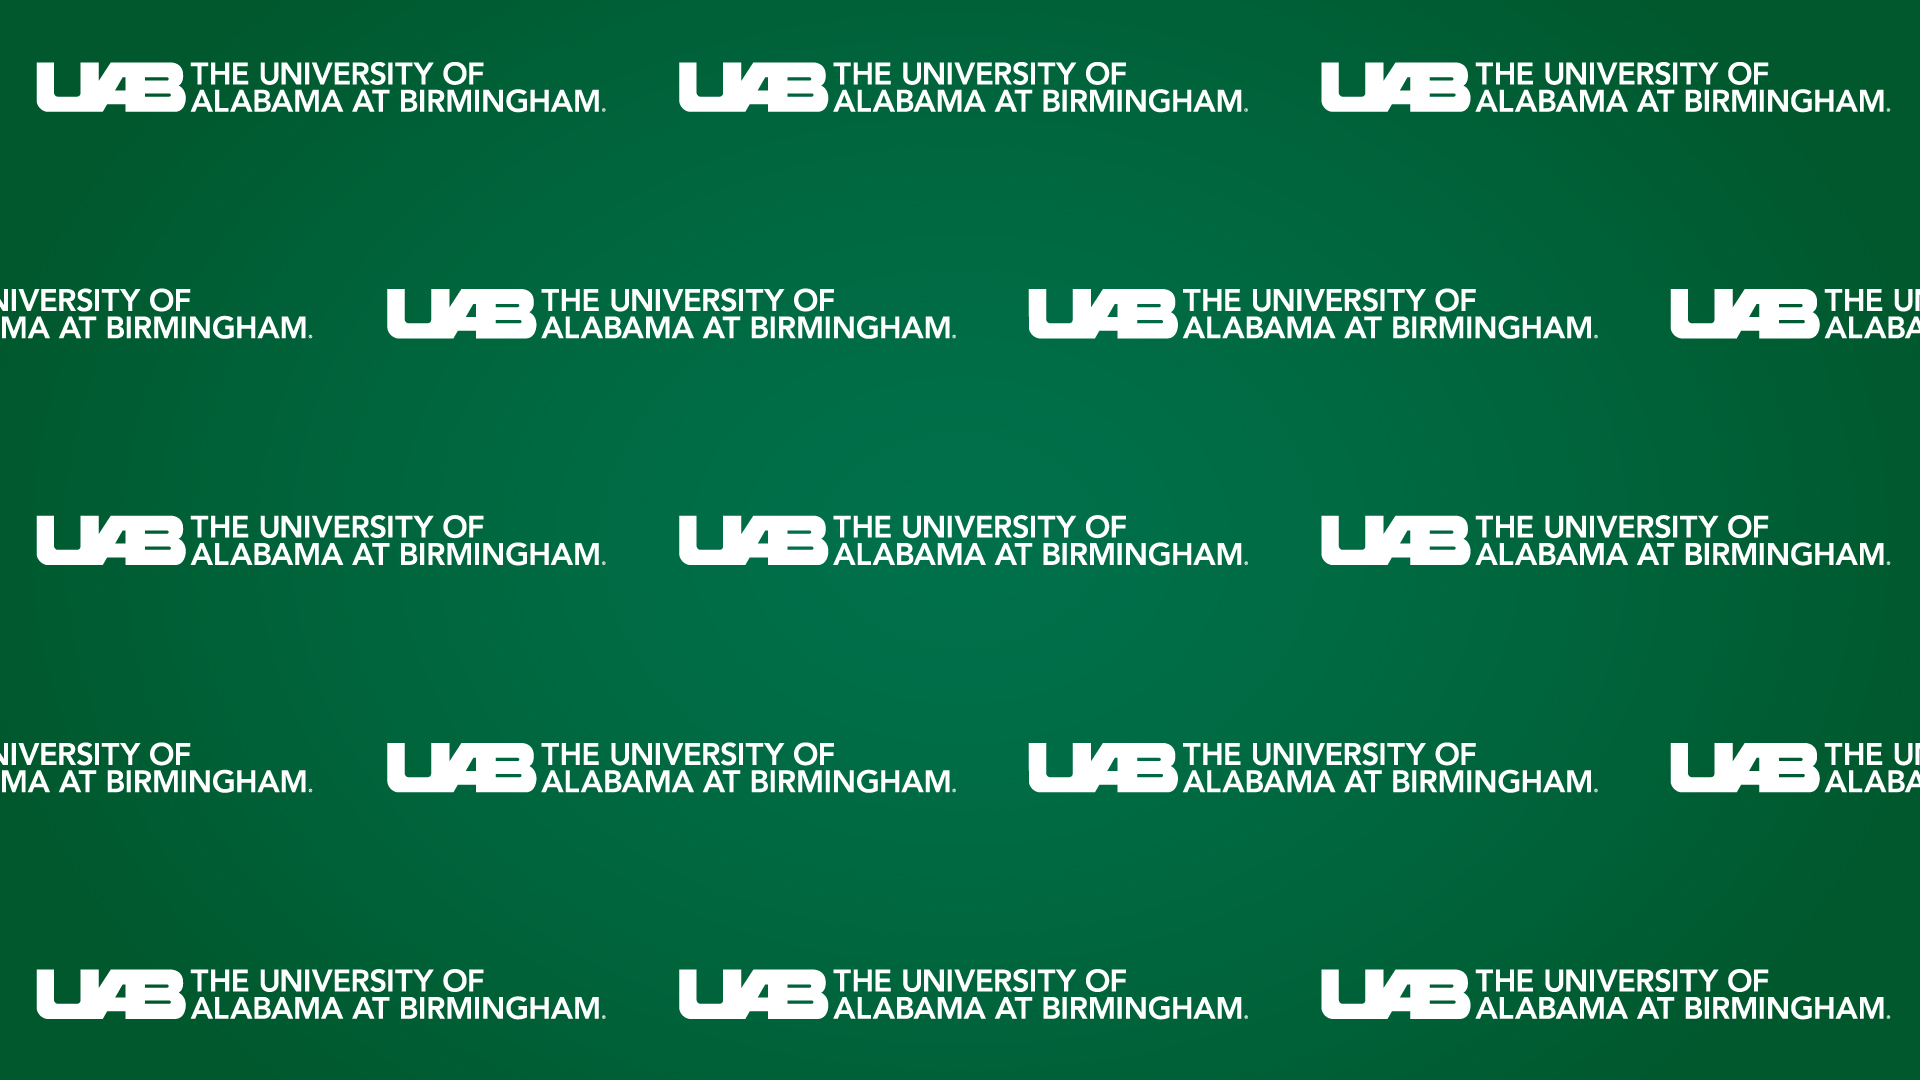 White UAB logo repeated on green backdrop.